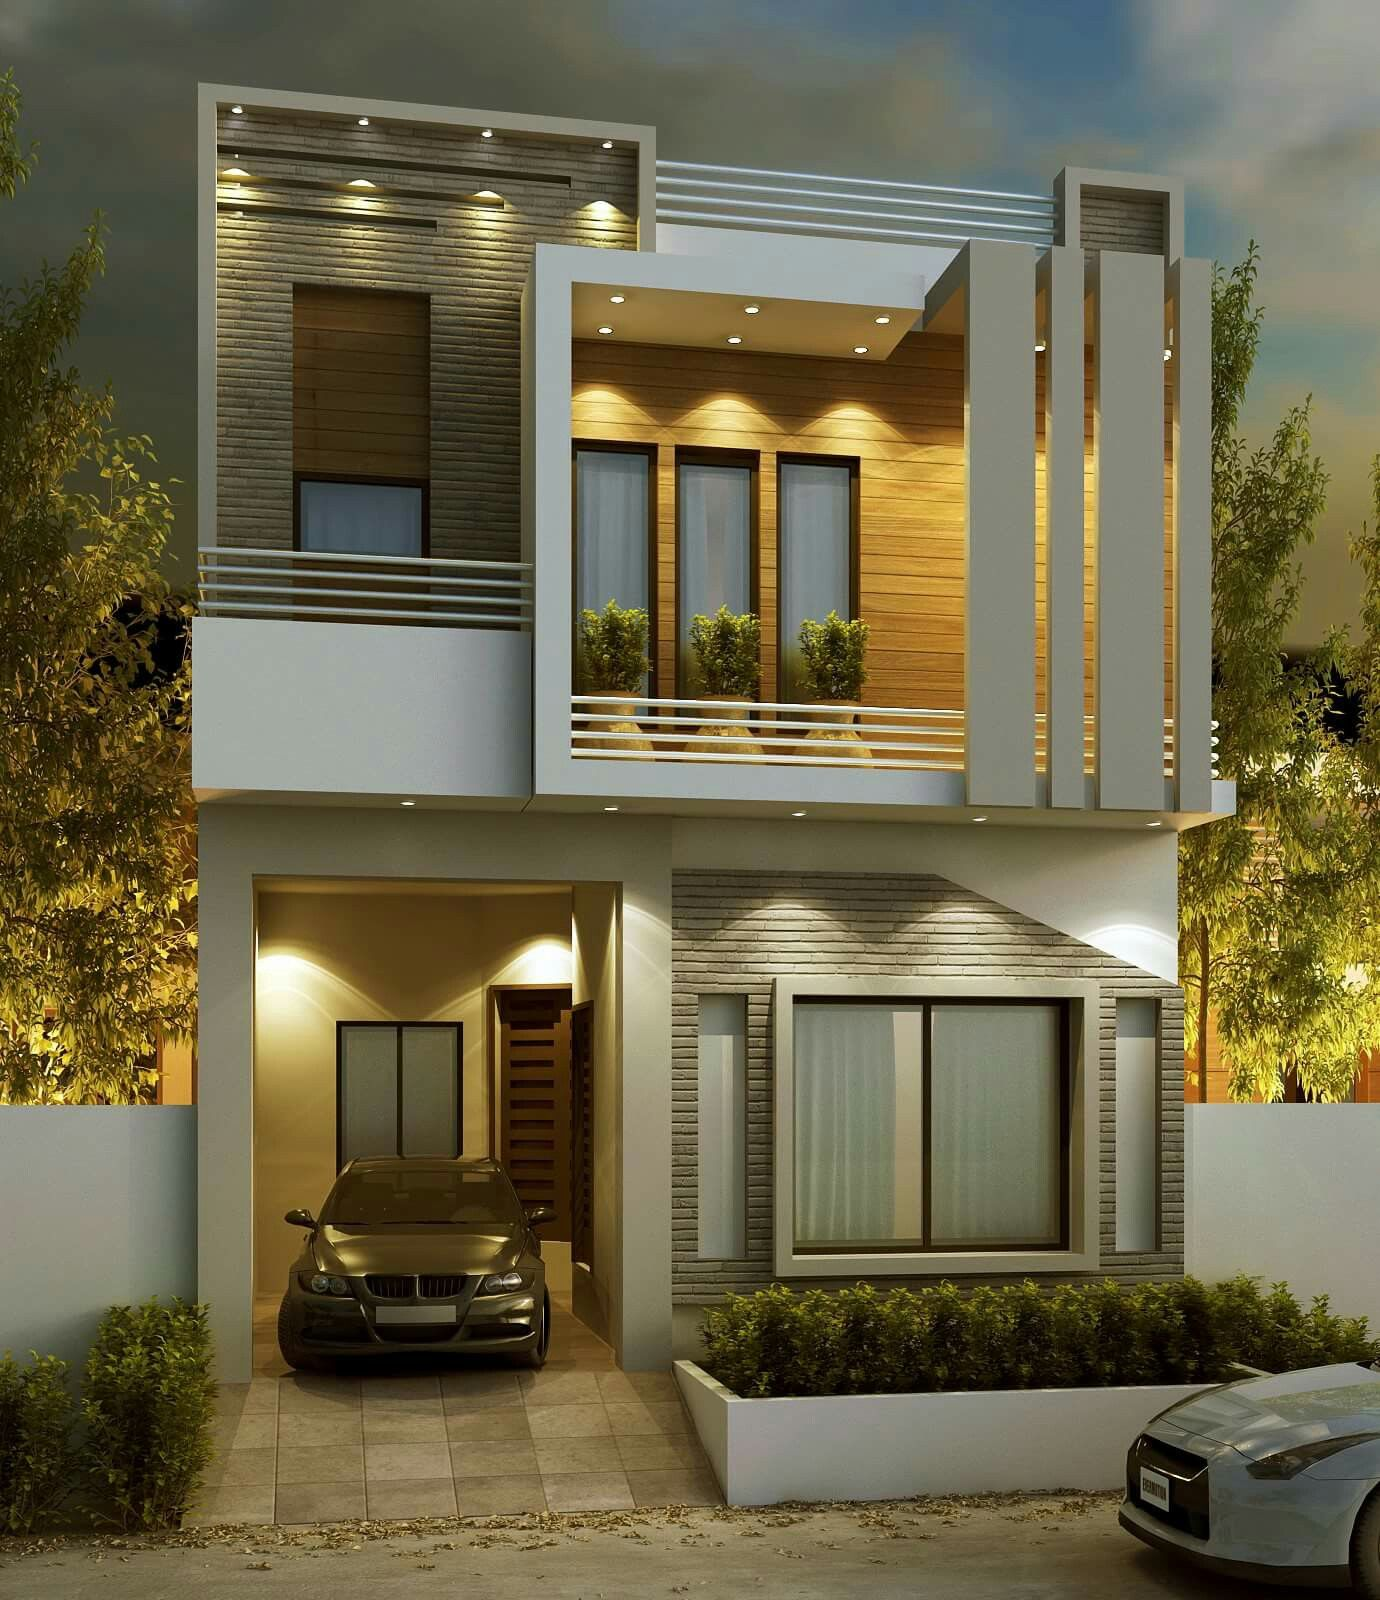 5 Marla House Plan Elevation Architecture Design Sustainable Art Join Youtube Community F Bungalow House Design Modern House Exterior Duplex House Design